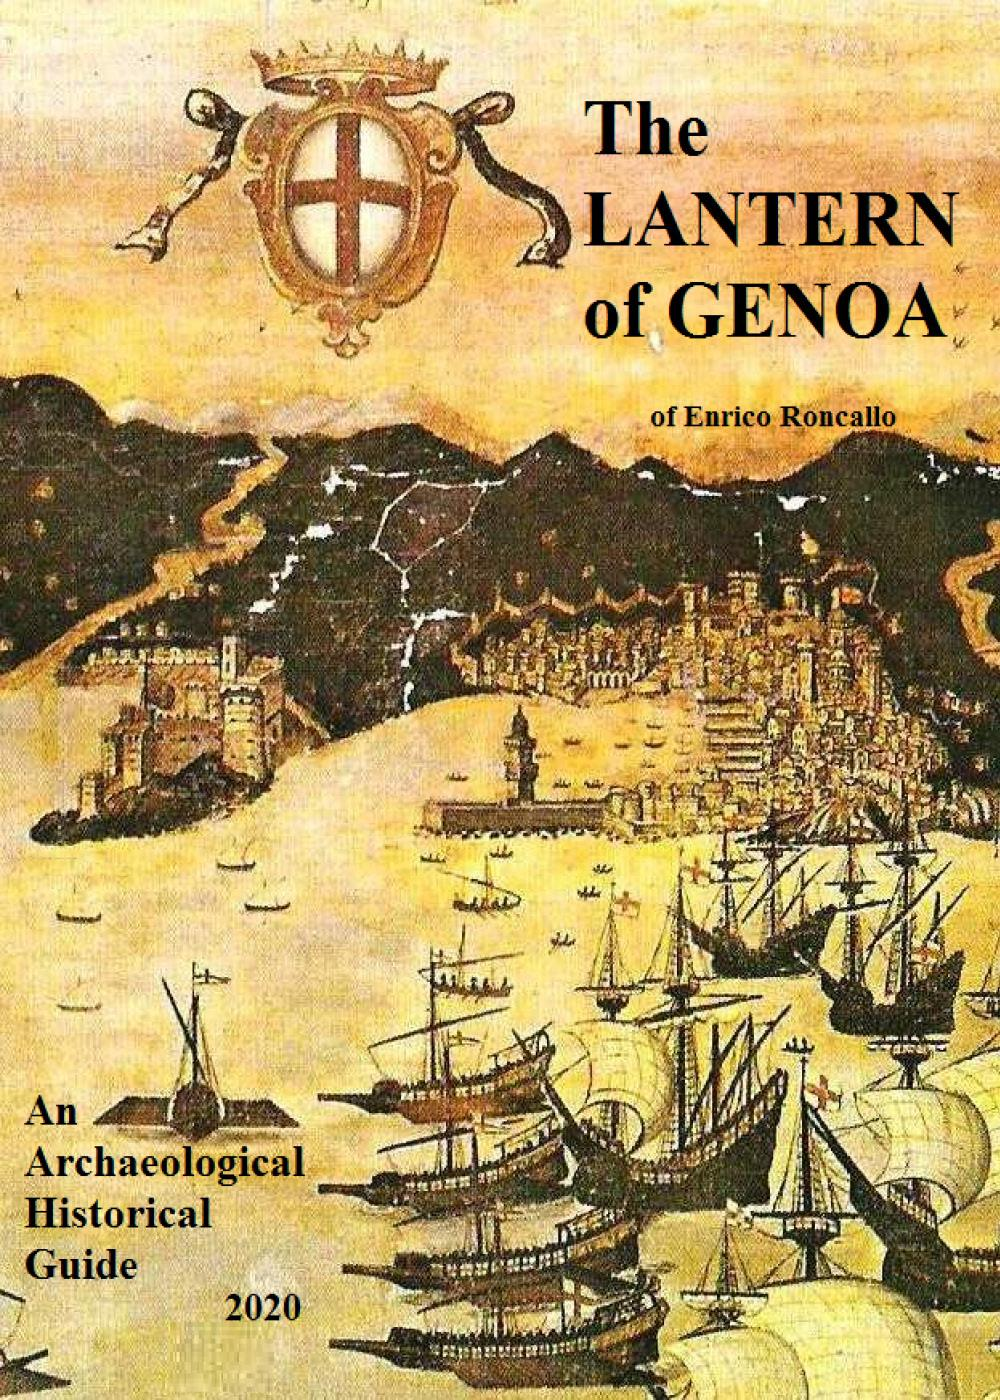 The lantern of Genoa. An Archaeological historical guide 2020